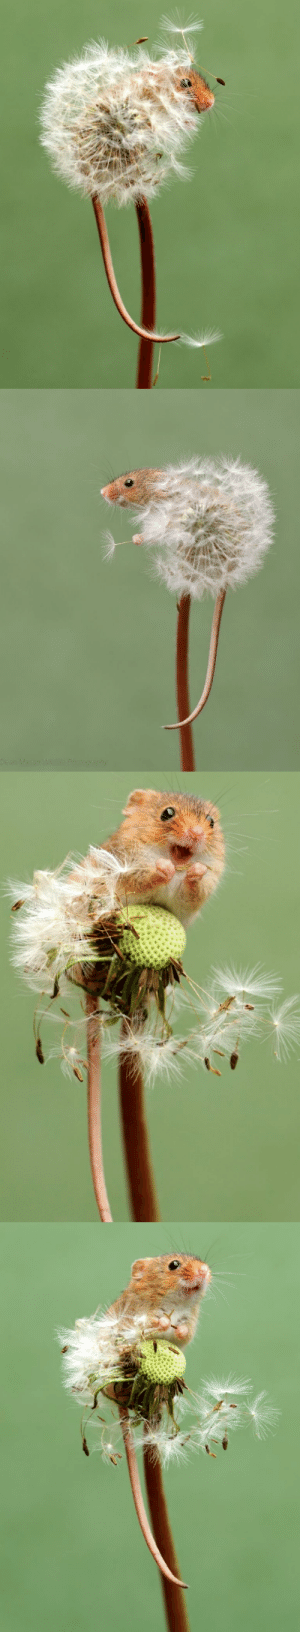 inkwingart:  salemwitchtrials: Harvest mouse on a dandelion by Dean Mason @spaceshipkat look at this TINY FRIEND: Dean Mason Wildle Photography inkwingart:  salemwitchtrials: Harvest mouse on a dandelion by Dean Mason @spaceshipkat look at this TINY FRIEND